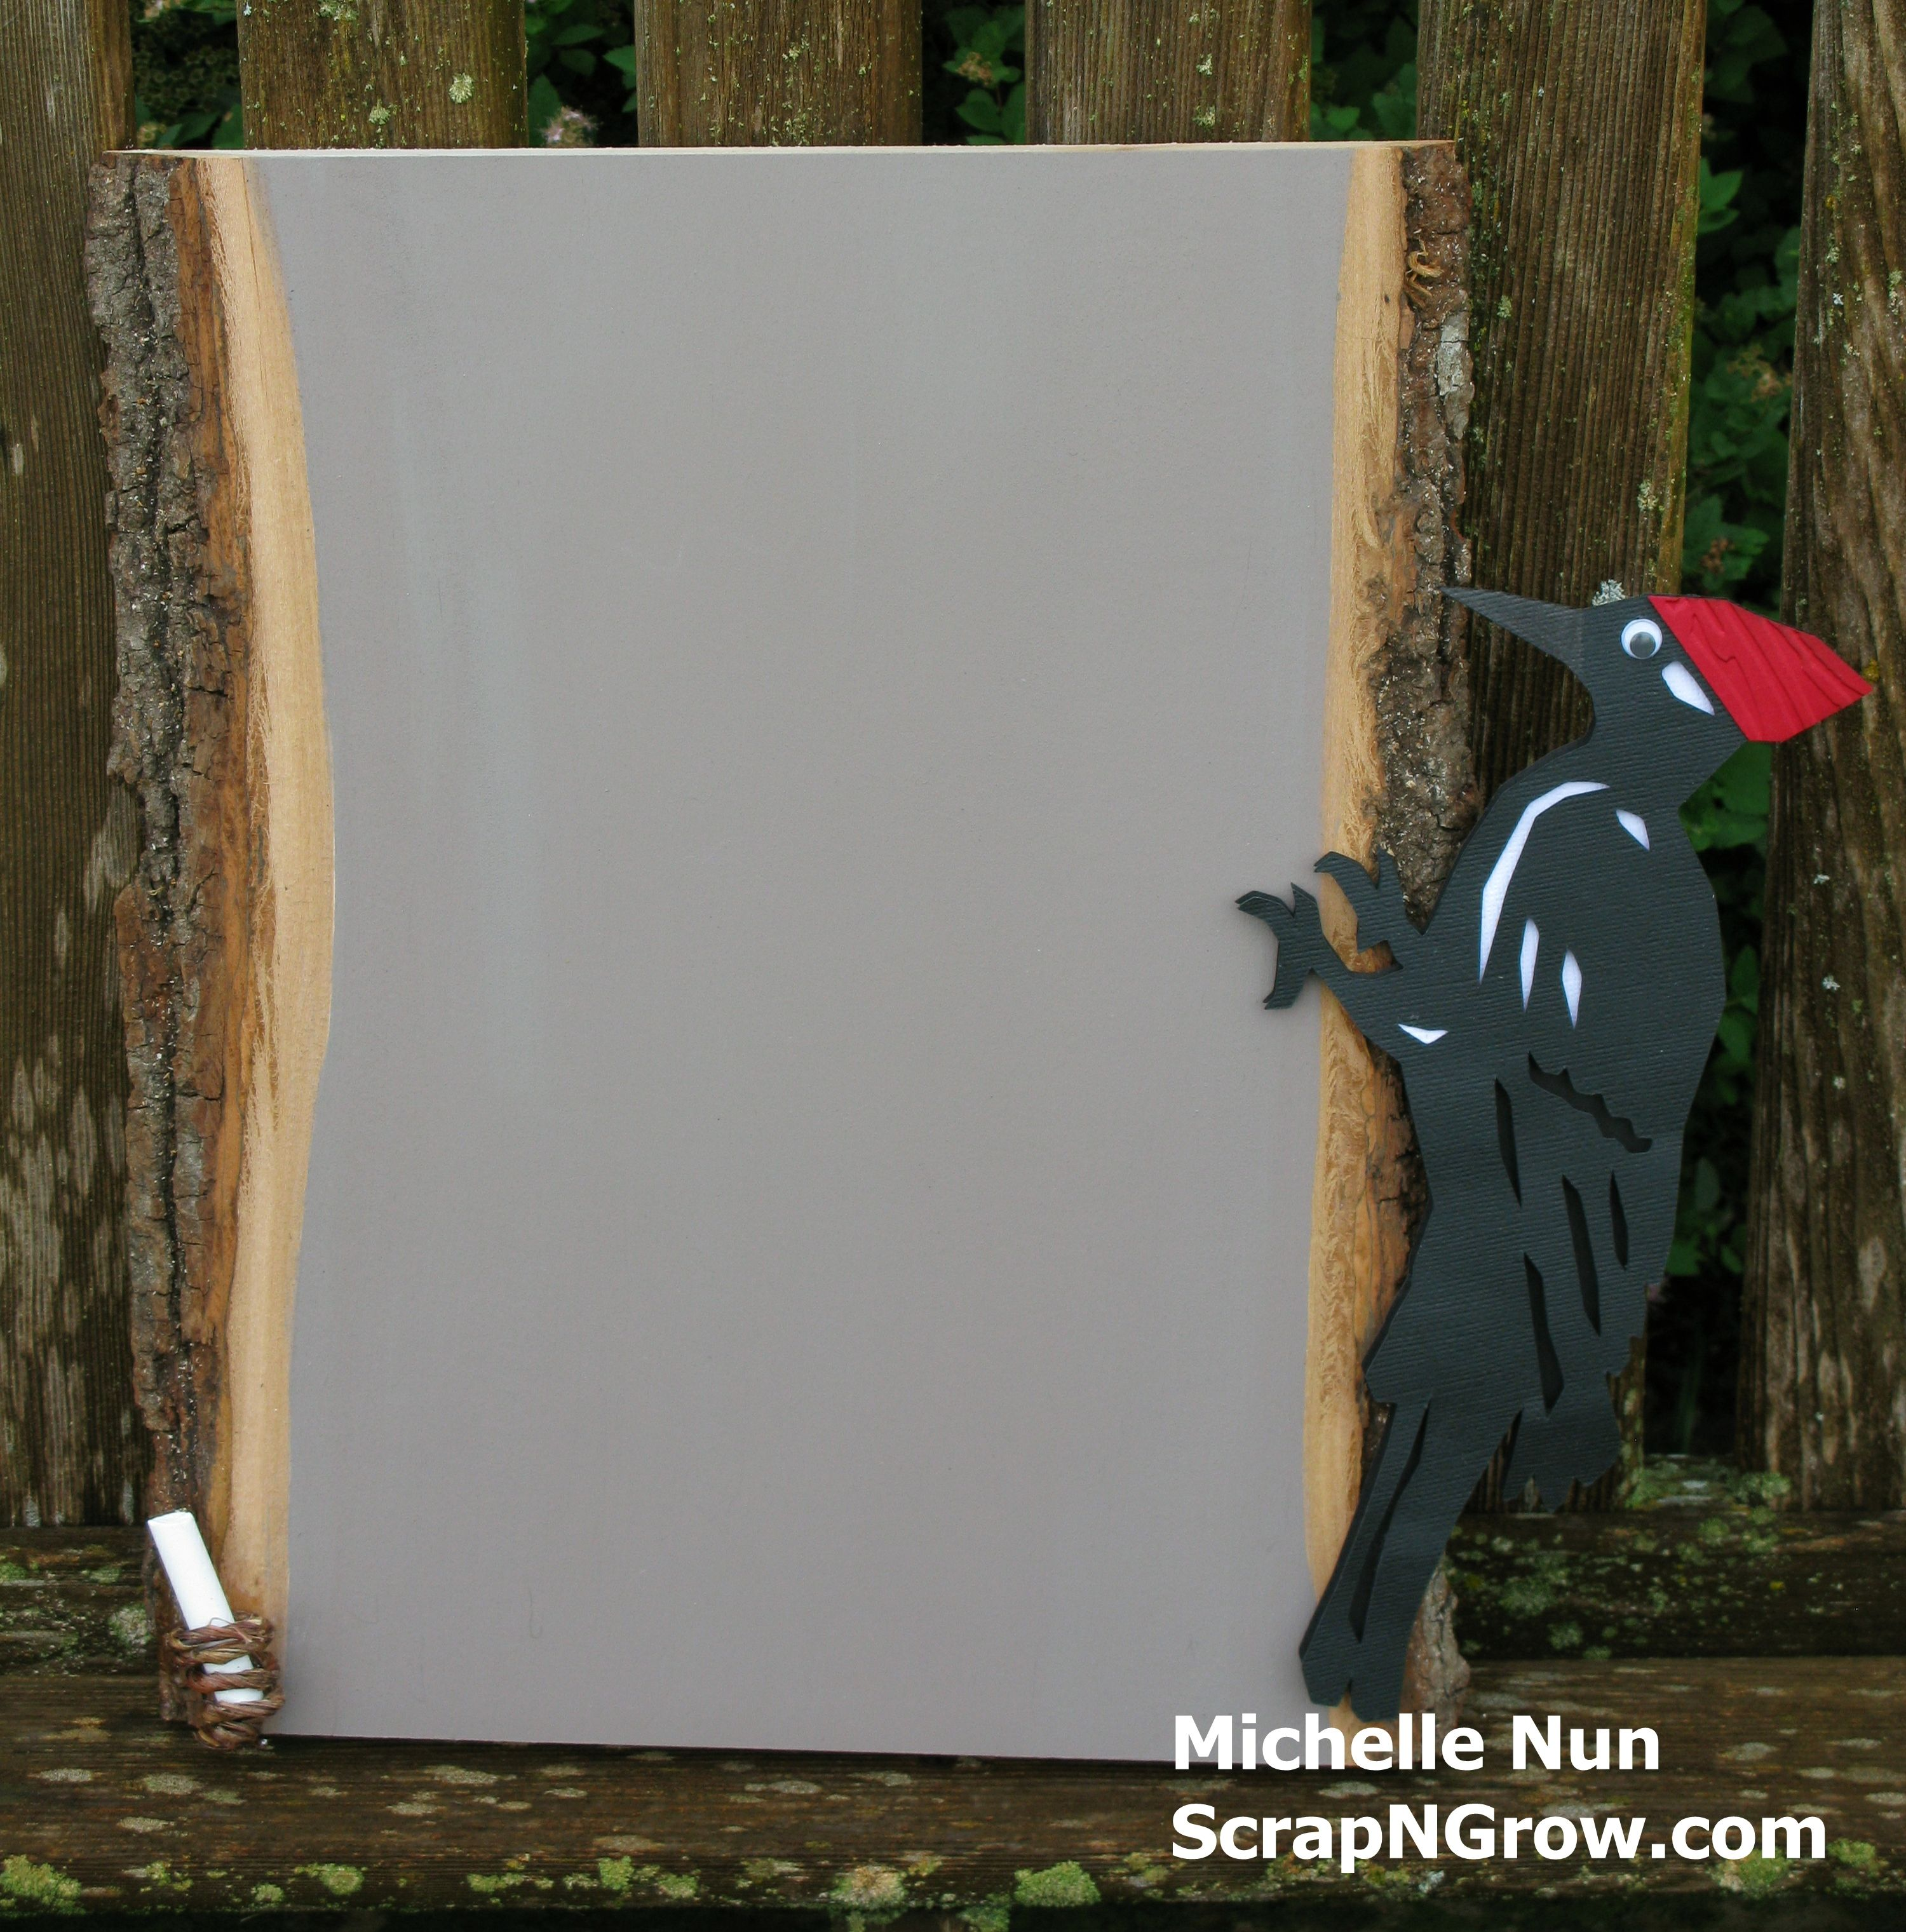 Pileated woodpecker chalkboard made using the states cricut